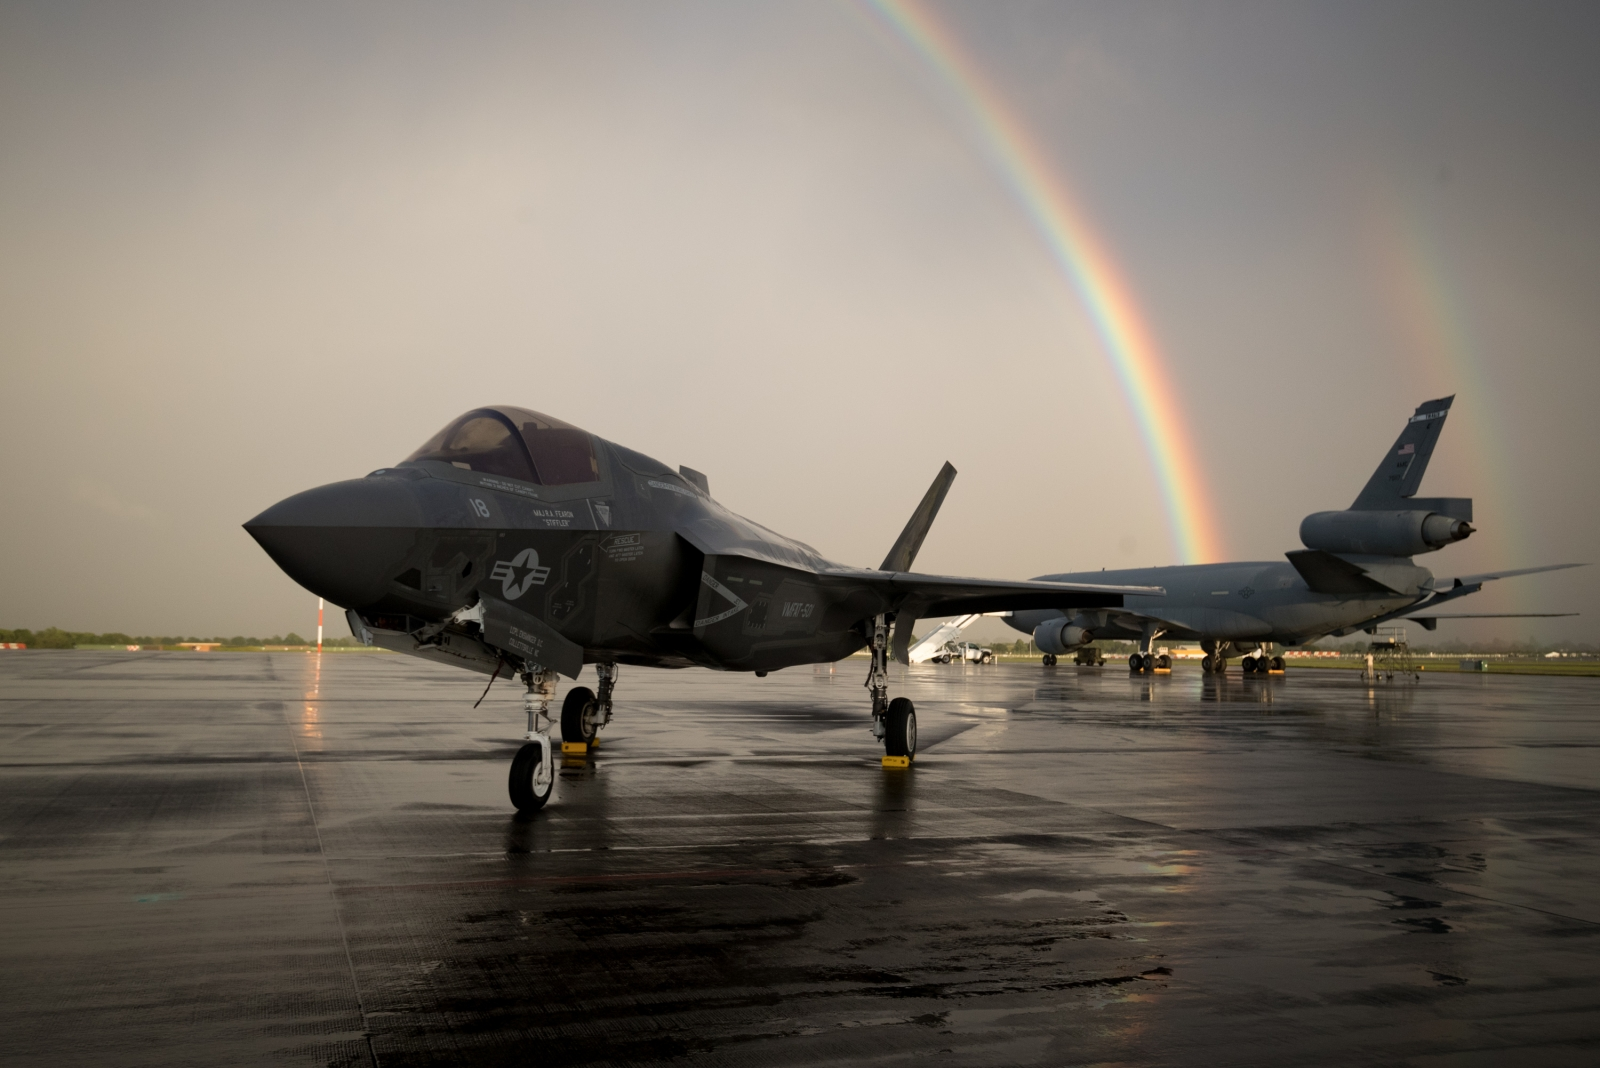 F-35 Lightning II: What is it?